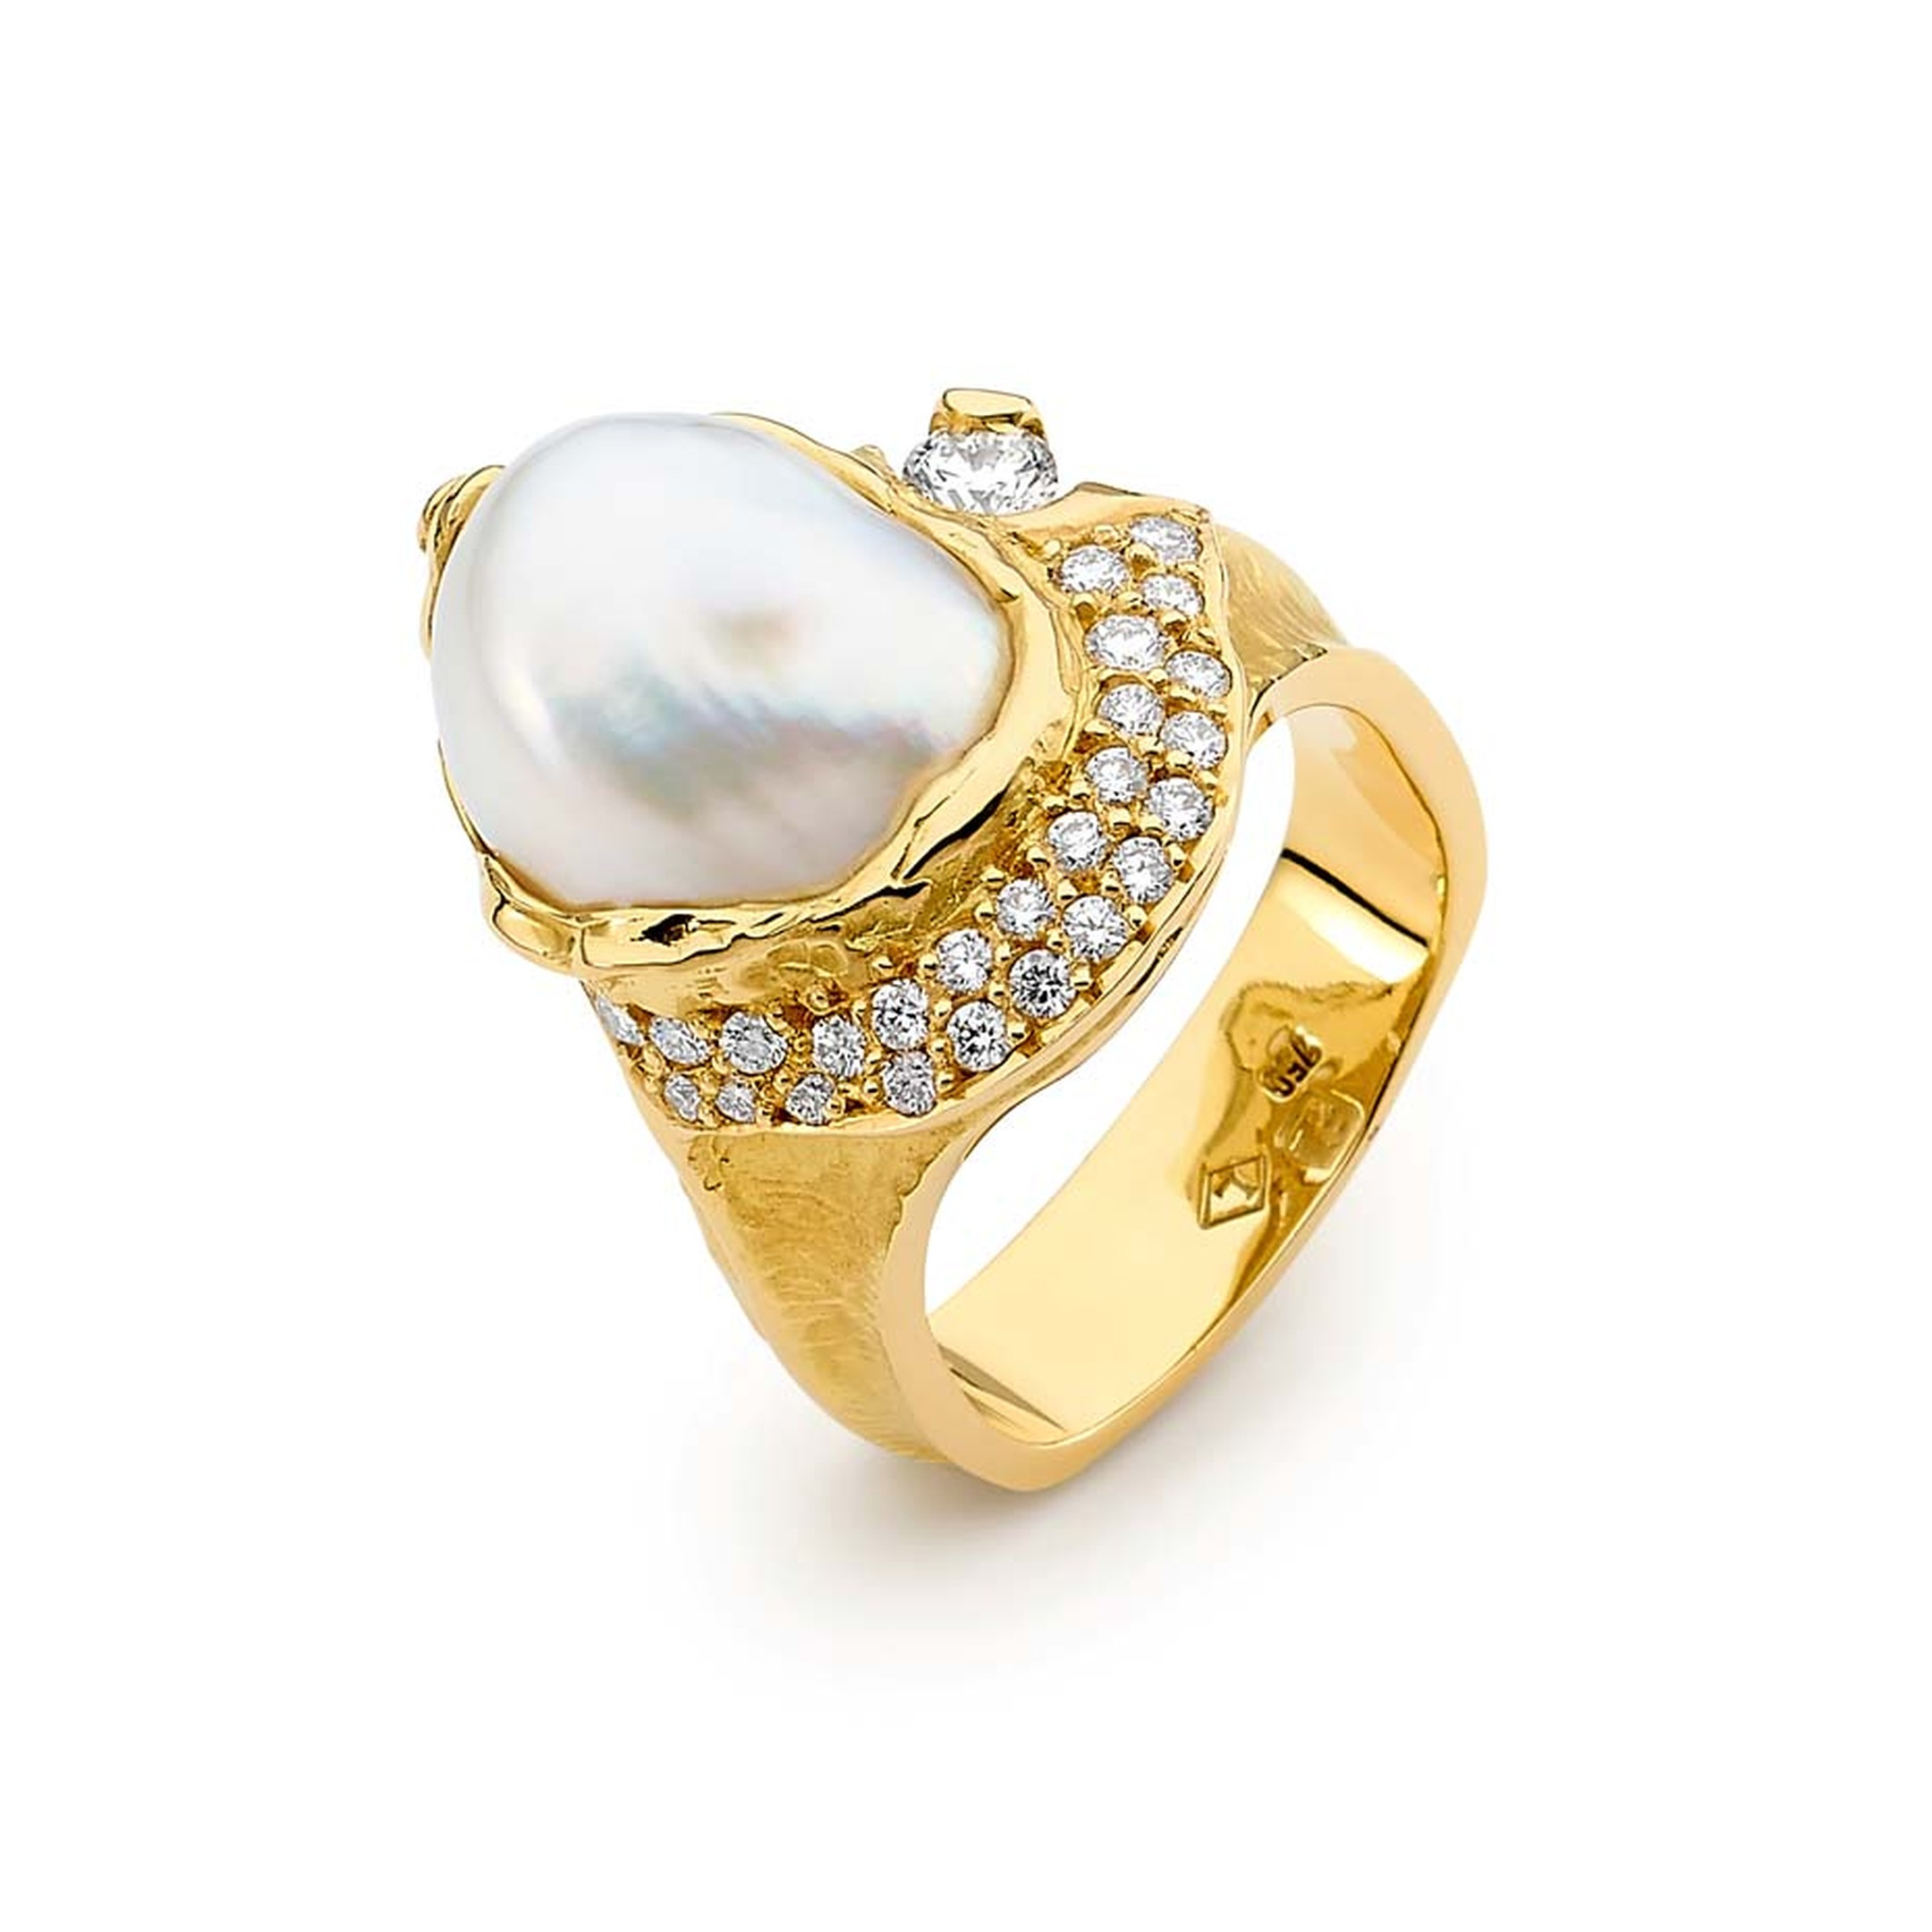 Linneys Australian seedless South Sea pearl ring in yellow gold with diamonds.